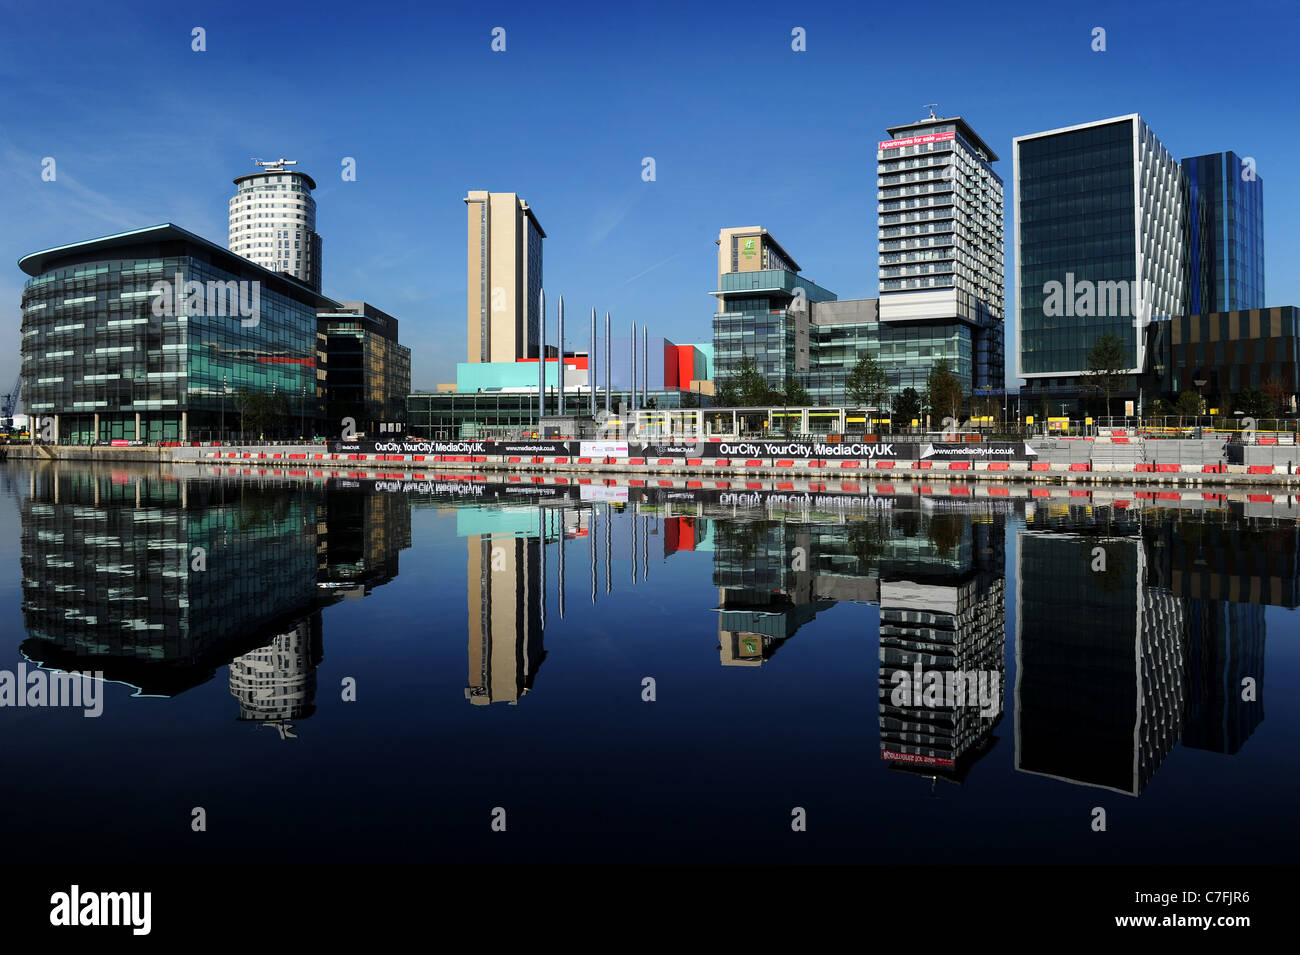 The new home of the BBC in the north at Media City, Salford, Greater Manchester, England. - Stock Image